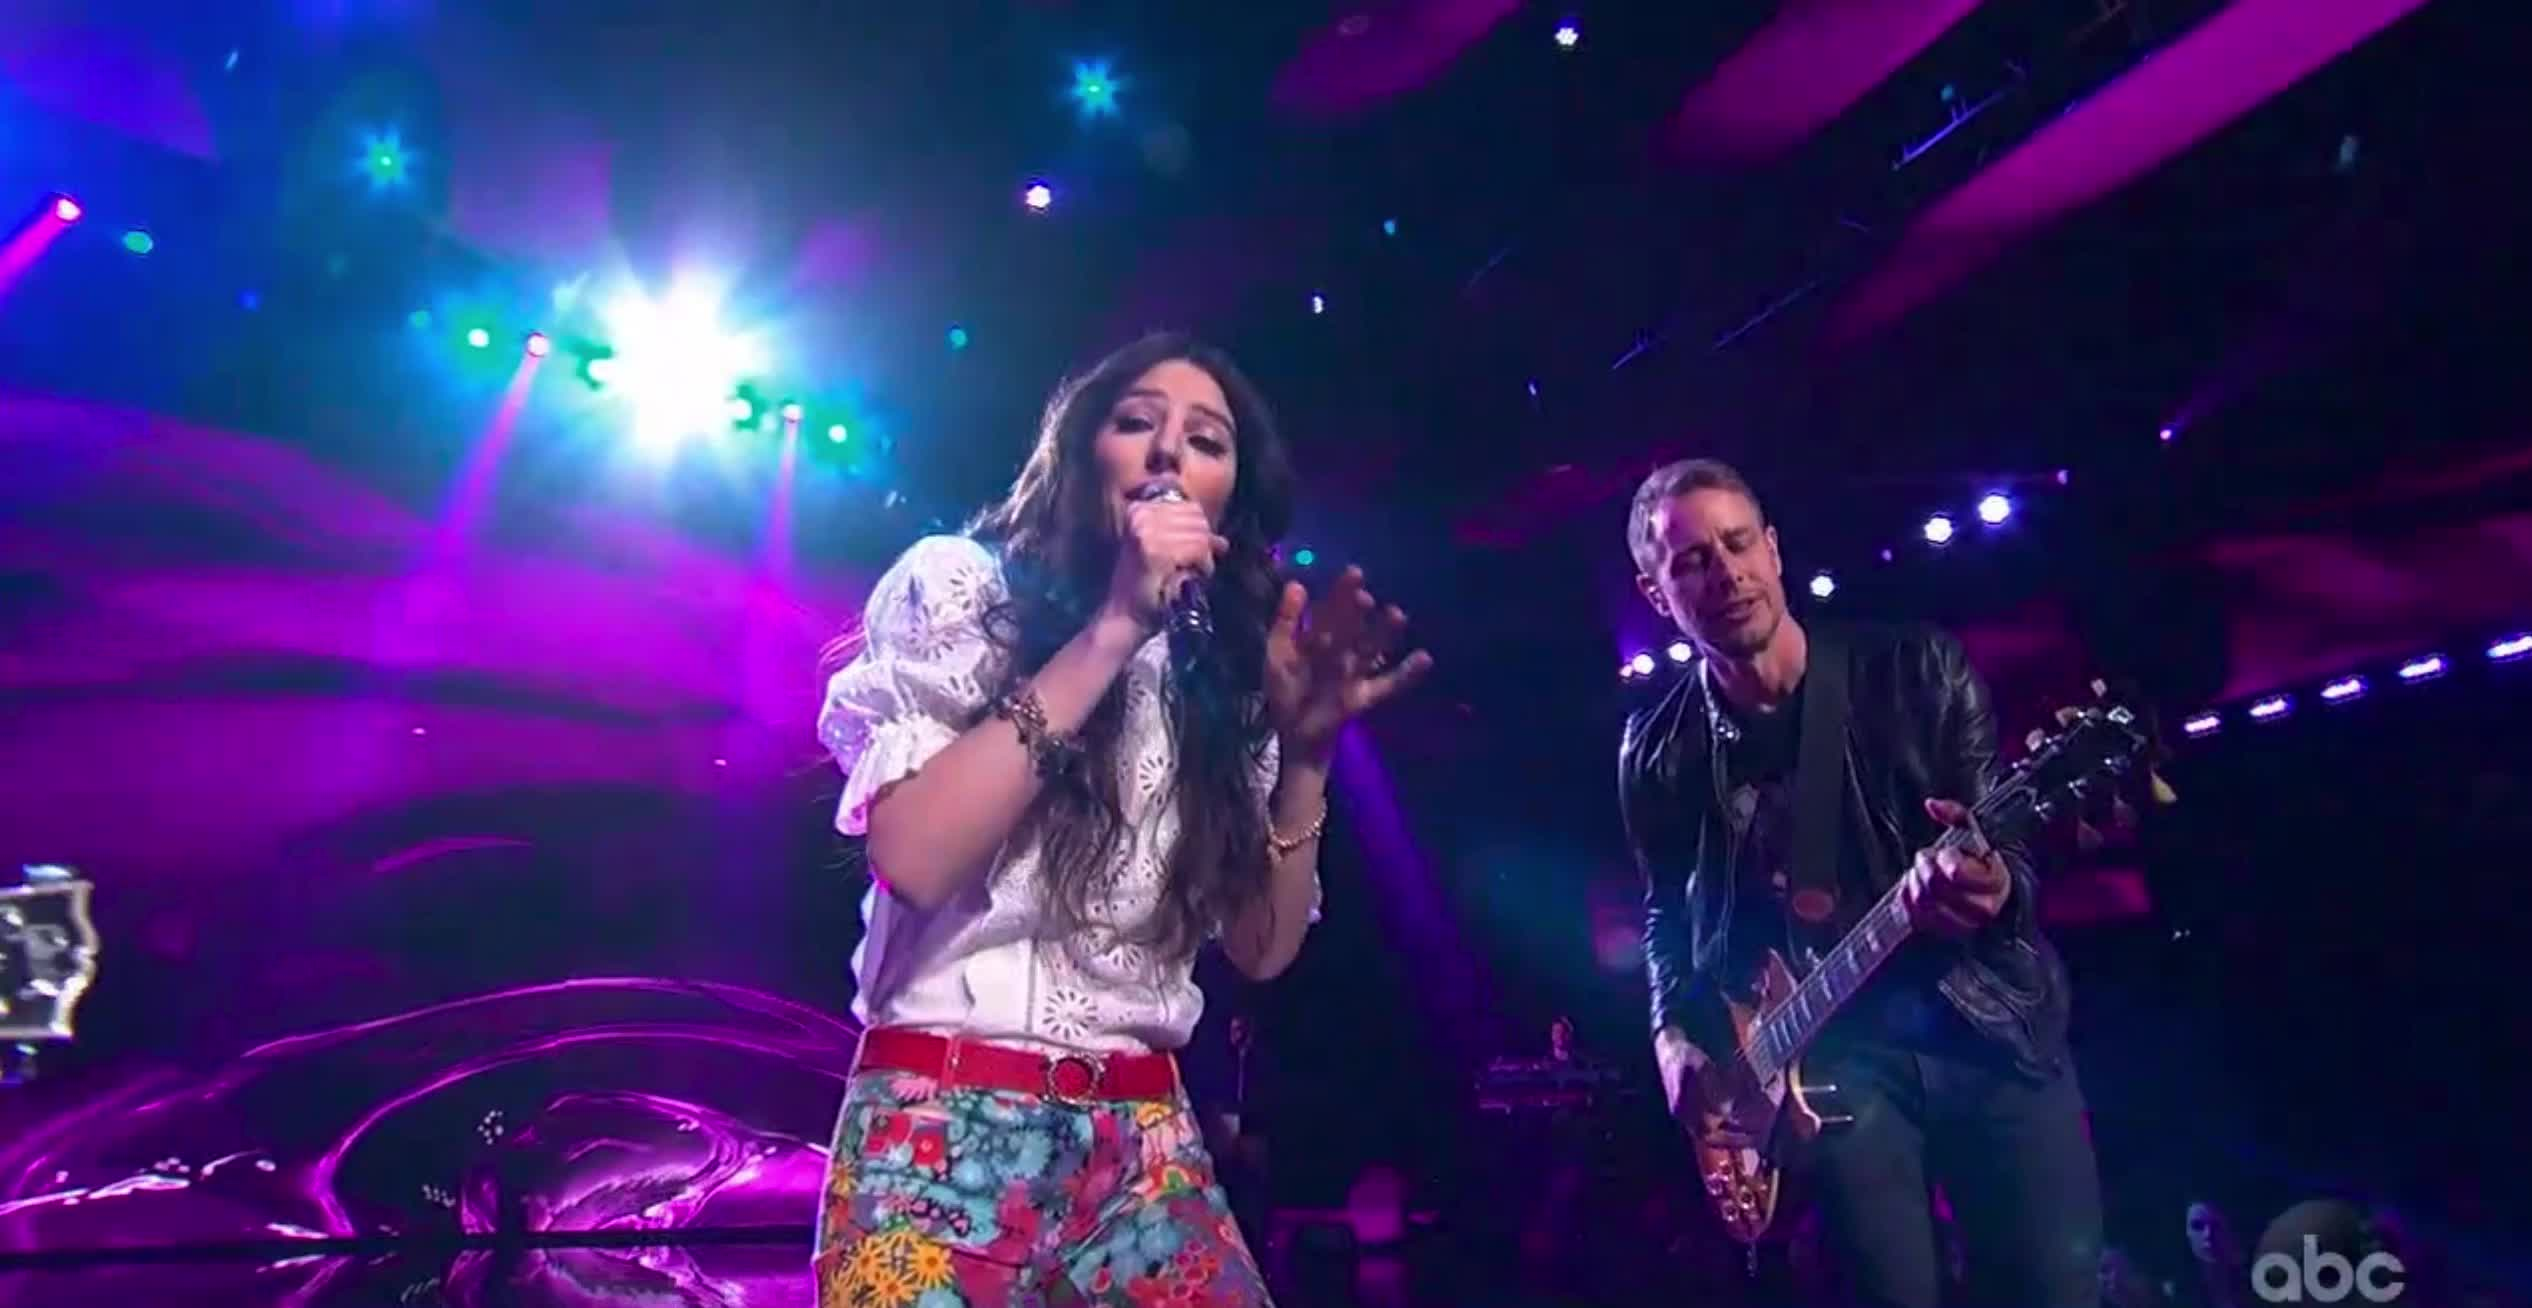 american idol, american idol season 17, americanidol, evelyn cormier, katy perry, lionel richie, luke bryan, ryan seacrest, season 17, singing, American Idol Evelyn Jamming GIFs